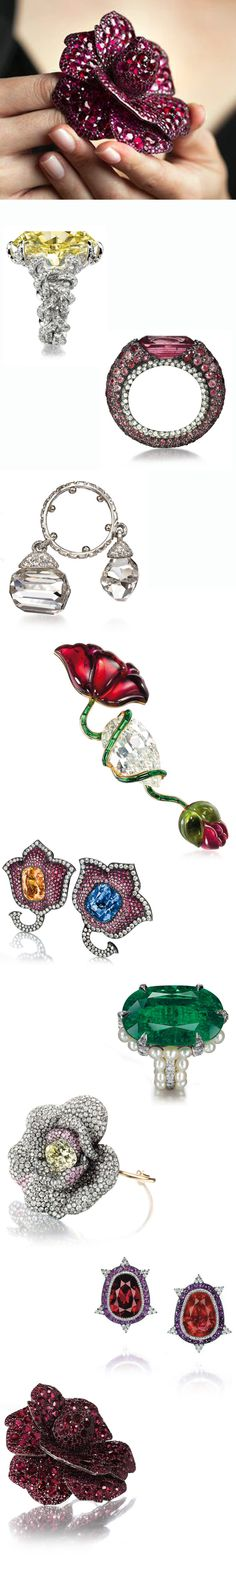 JAR Jewels exhibit currently at The Met, Manhattan. Amazing...ultimate luxe bling. PLease, santa???